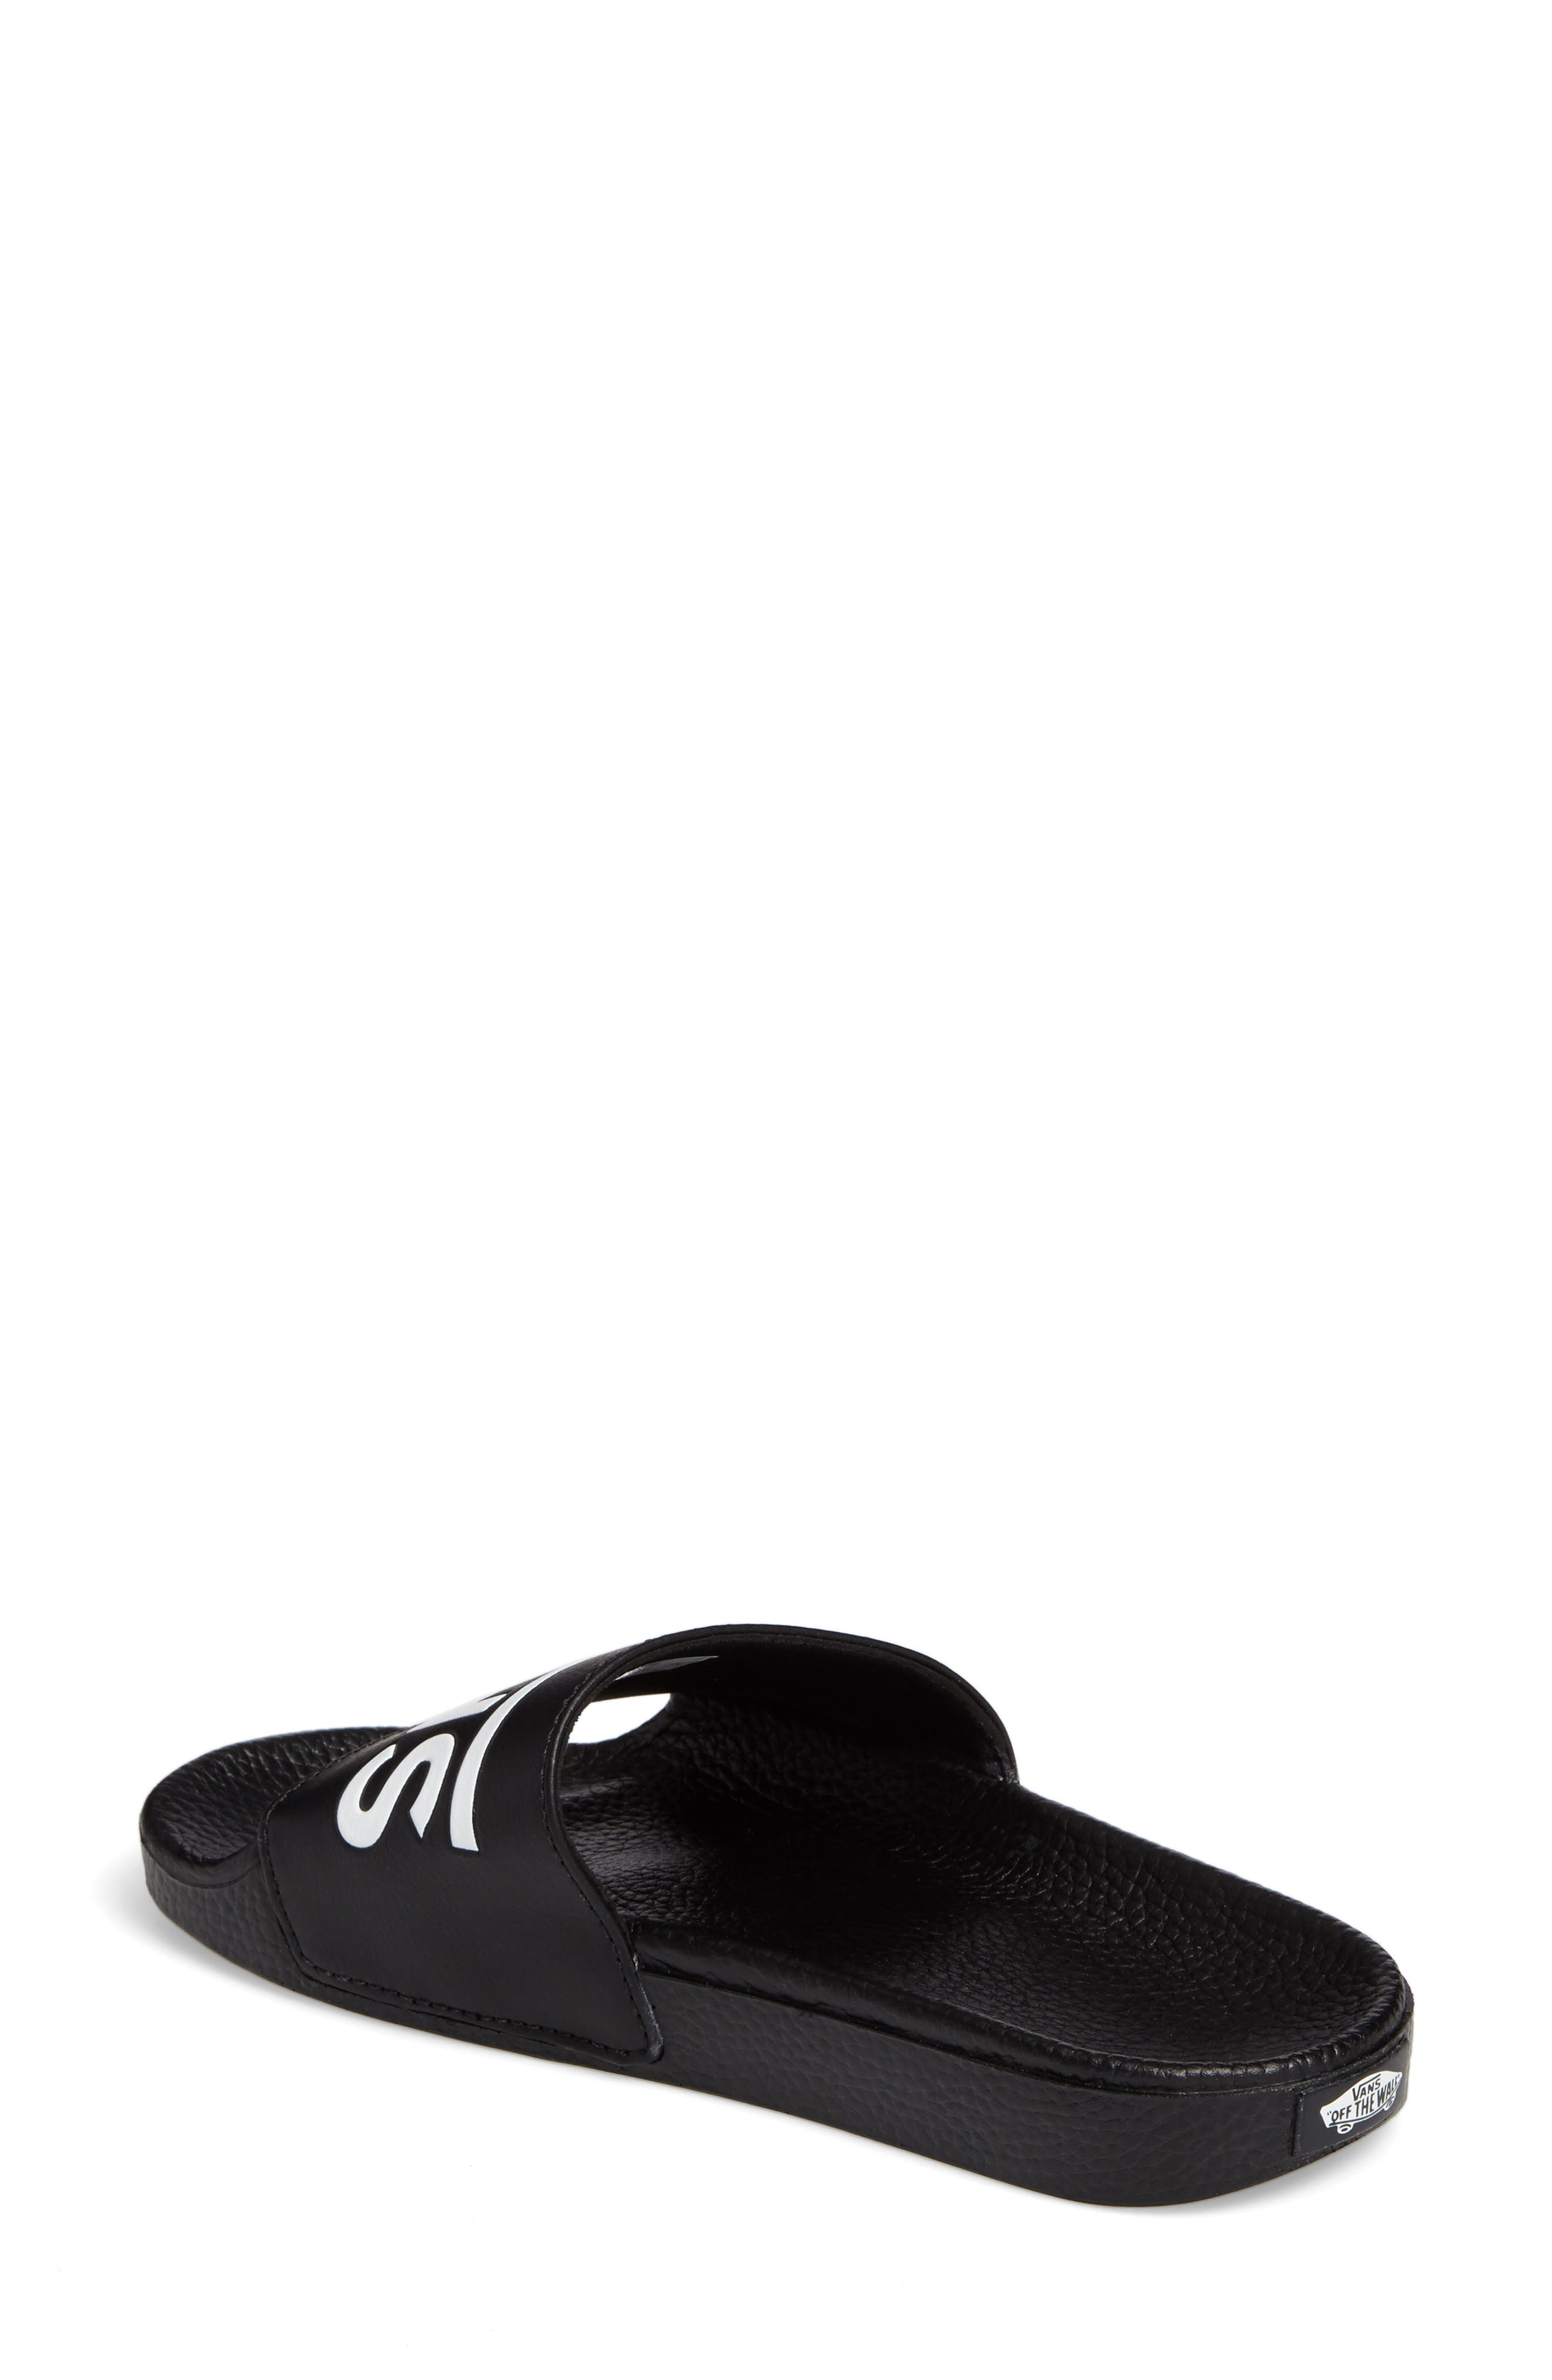 Alternate Image 2  - Vans Slide-On Sandal (Women)